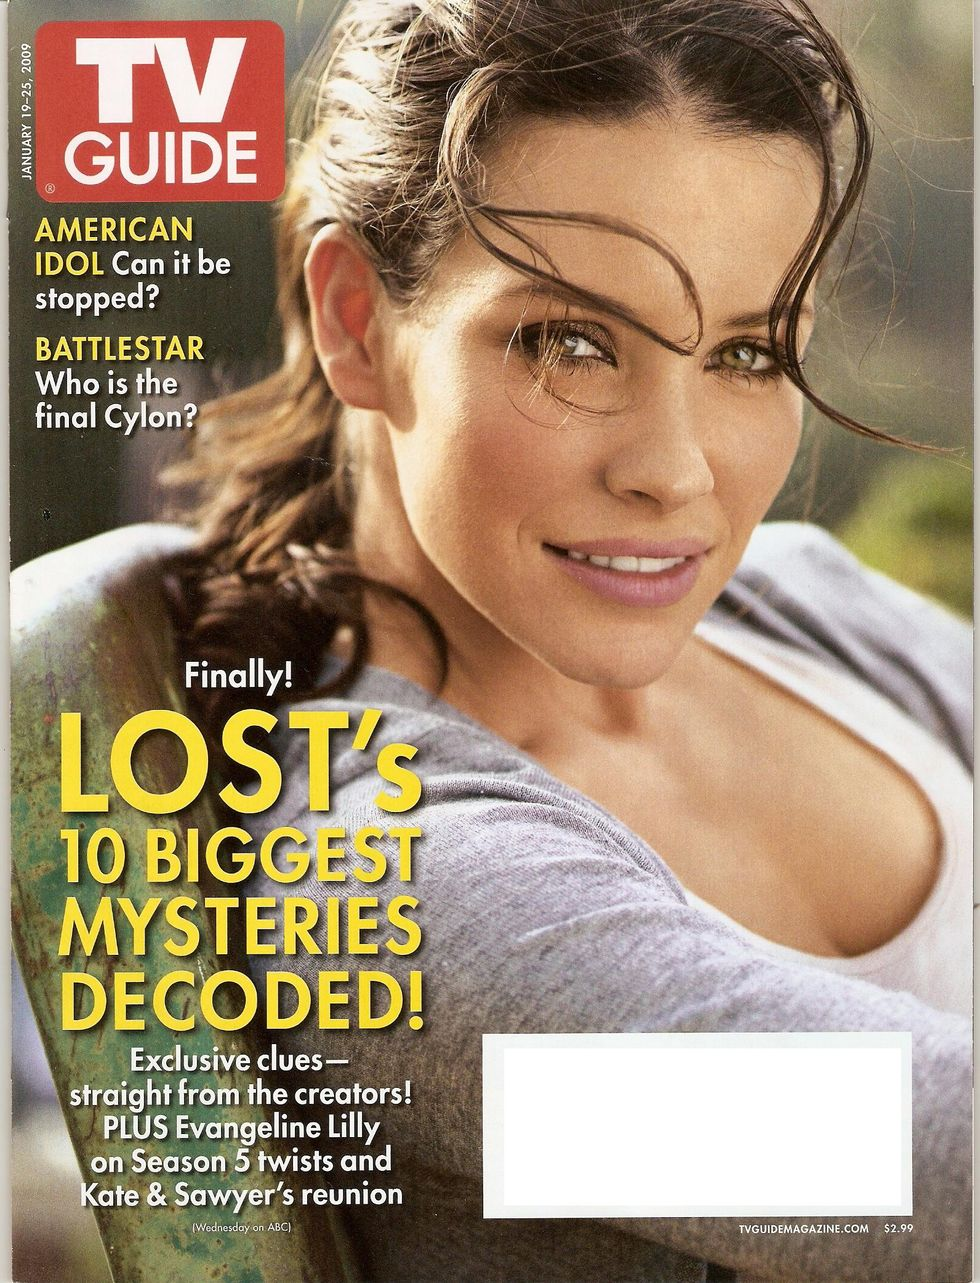 evangeline-lilly-tv-guide-magazine-january-2009-01